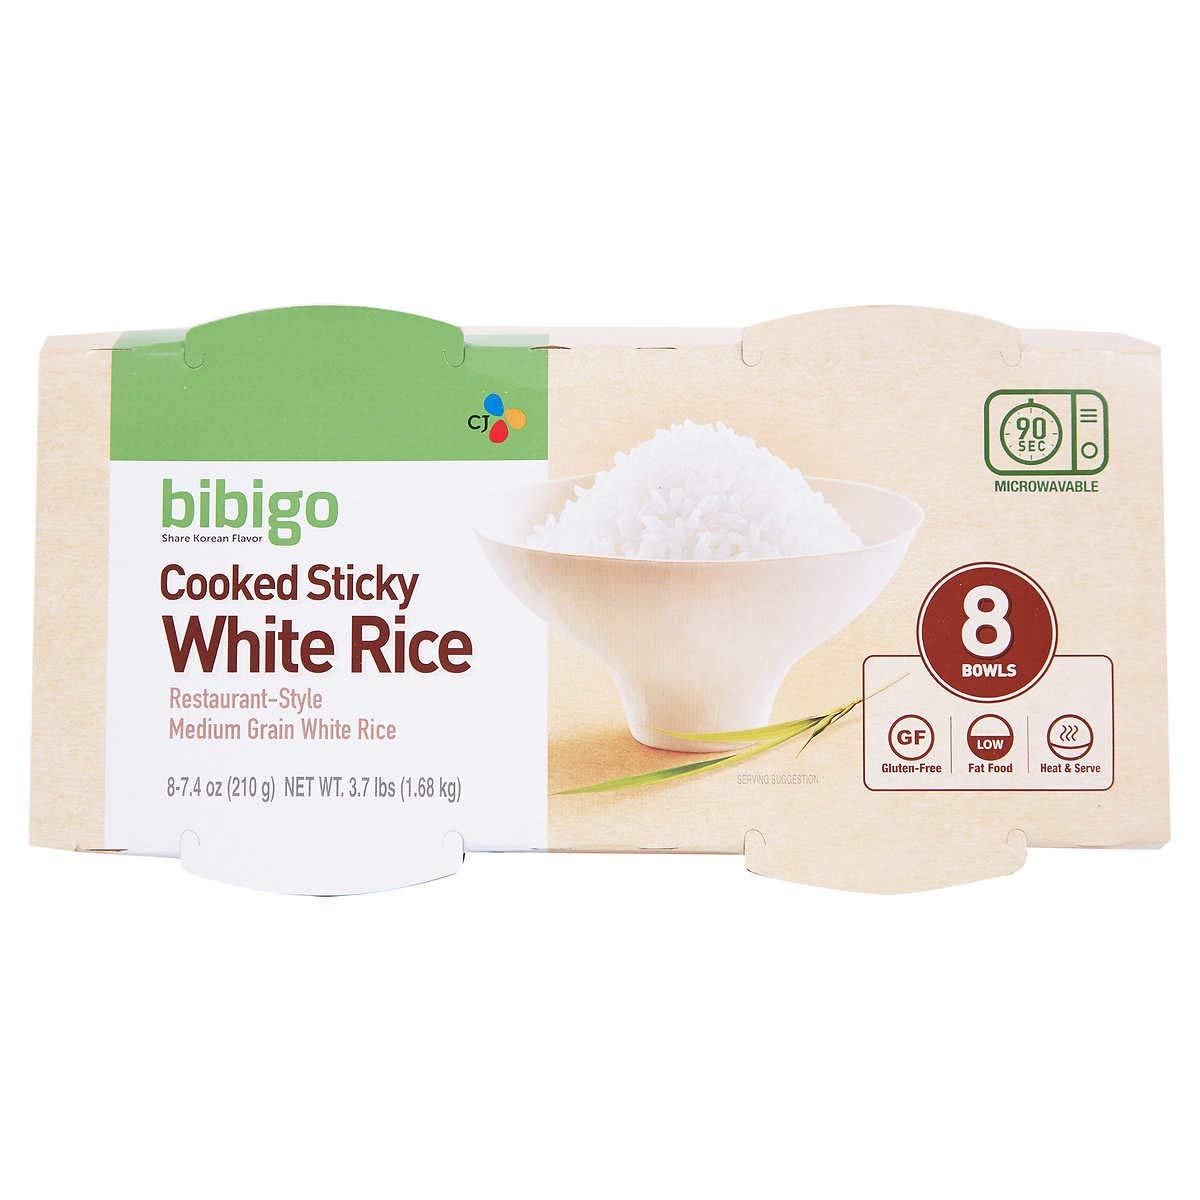 Bibigo Restaurant-Style Cooked Sticky White Rice, 8 - 7.4-ounce Bowls - PACK OF 2